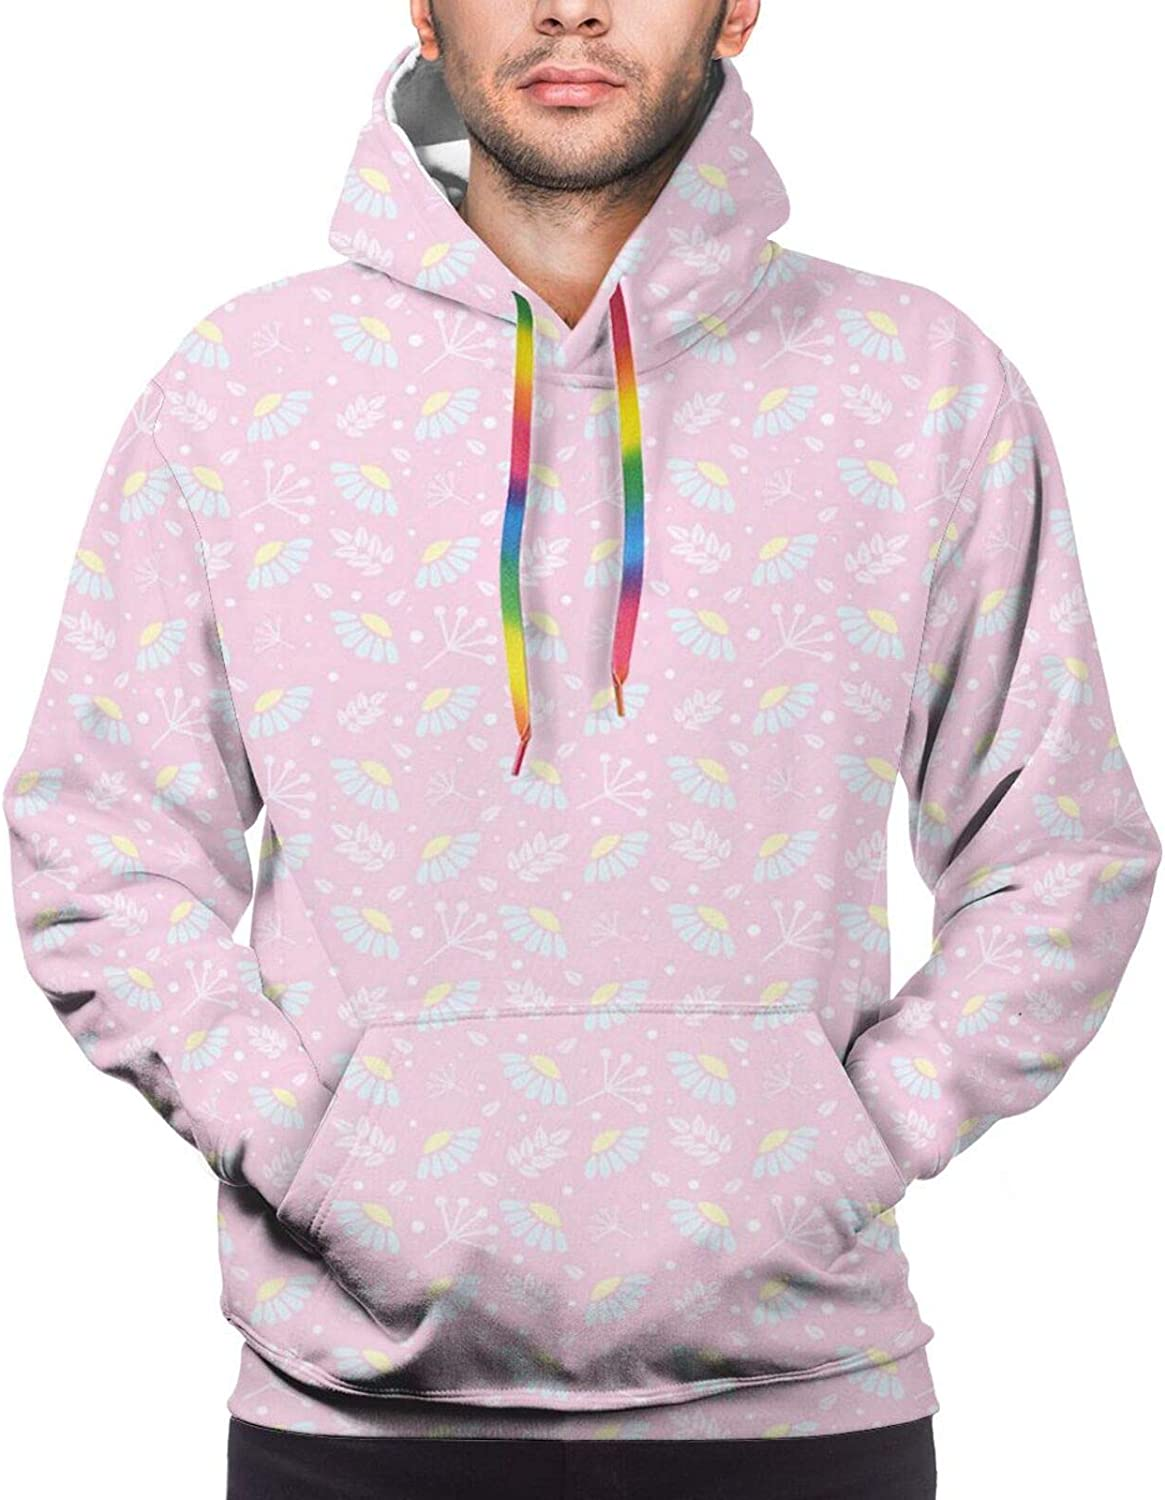 Men's Hoodies Sweatshirts,Lovely Illustration with Colorful Flower Petals On Vertical Stripes Graphic